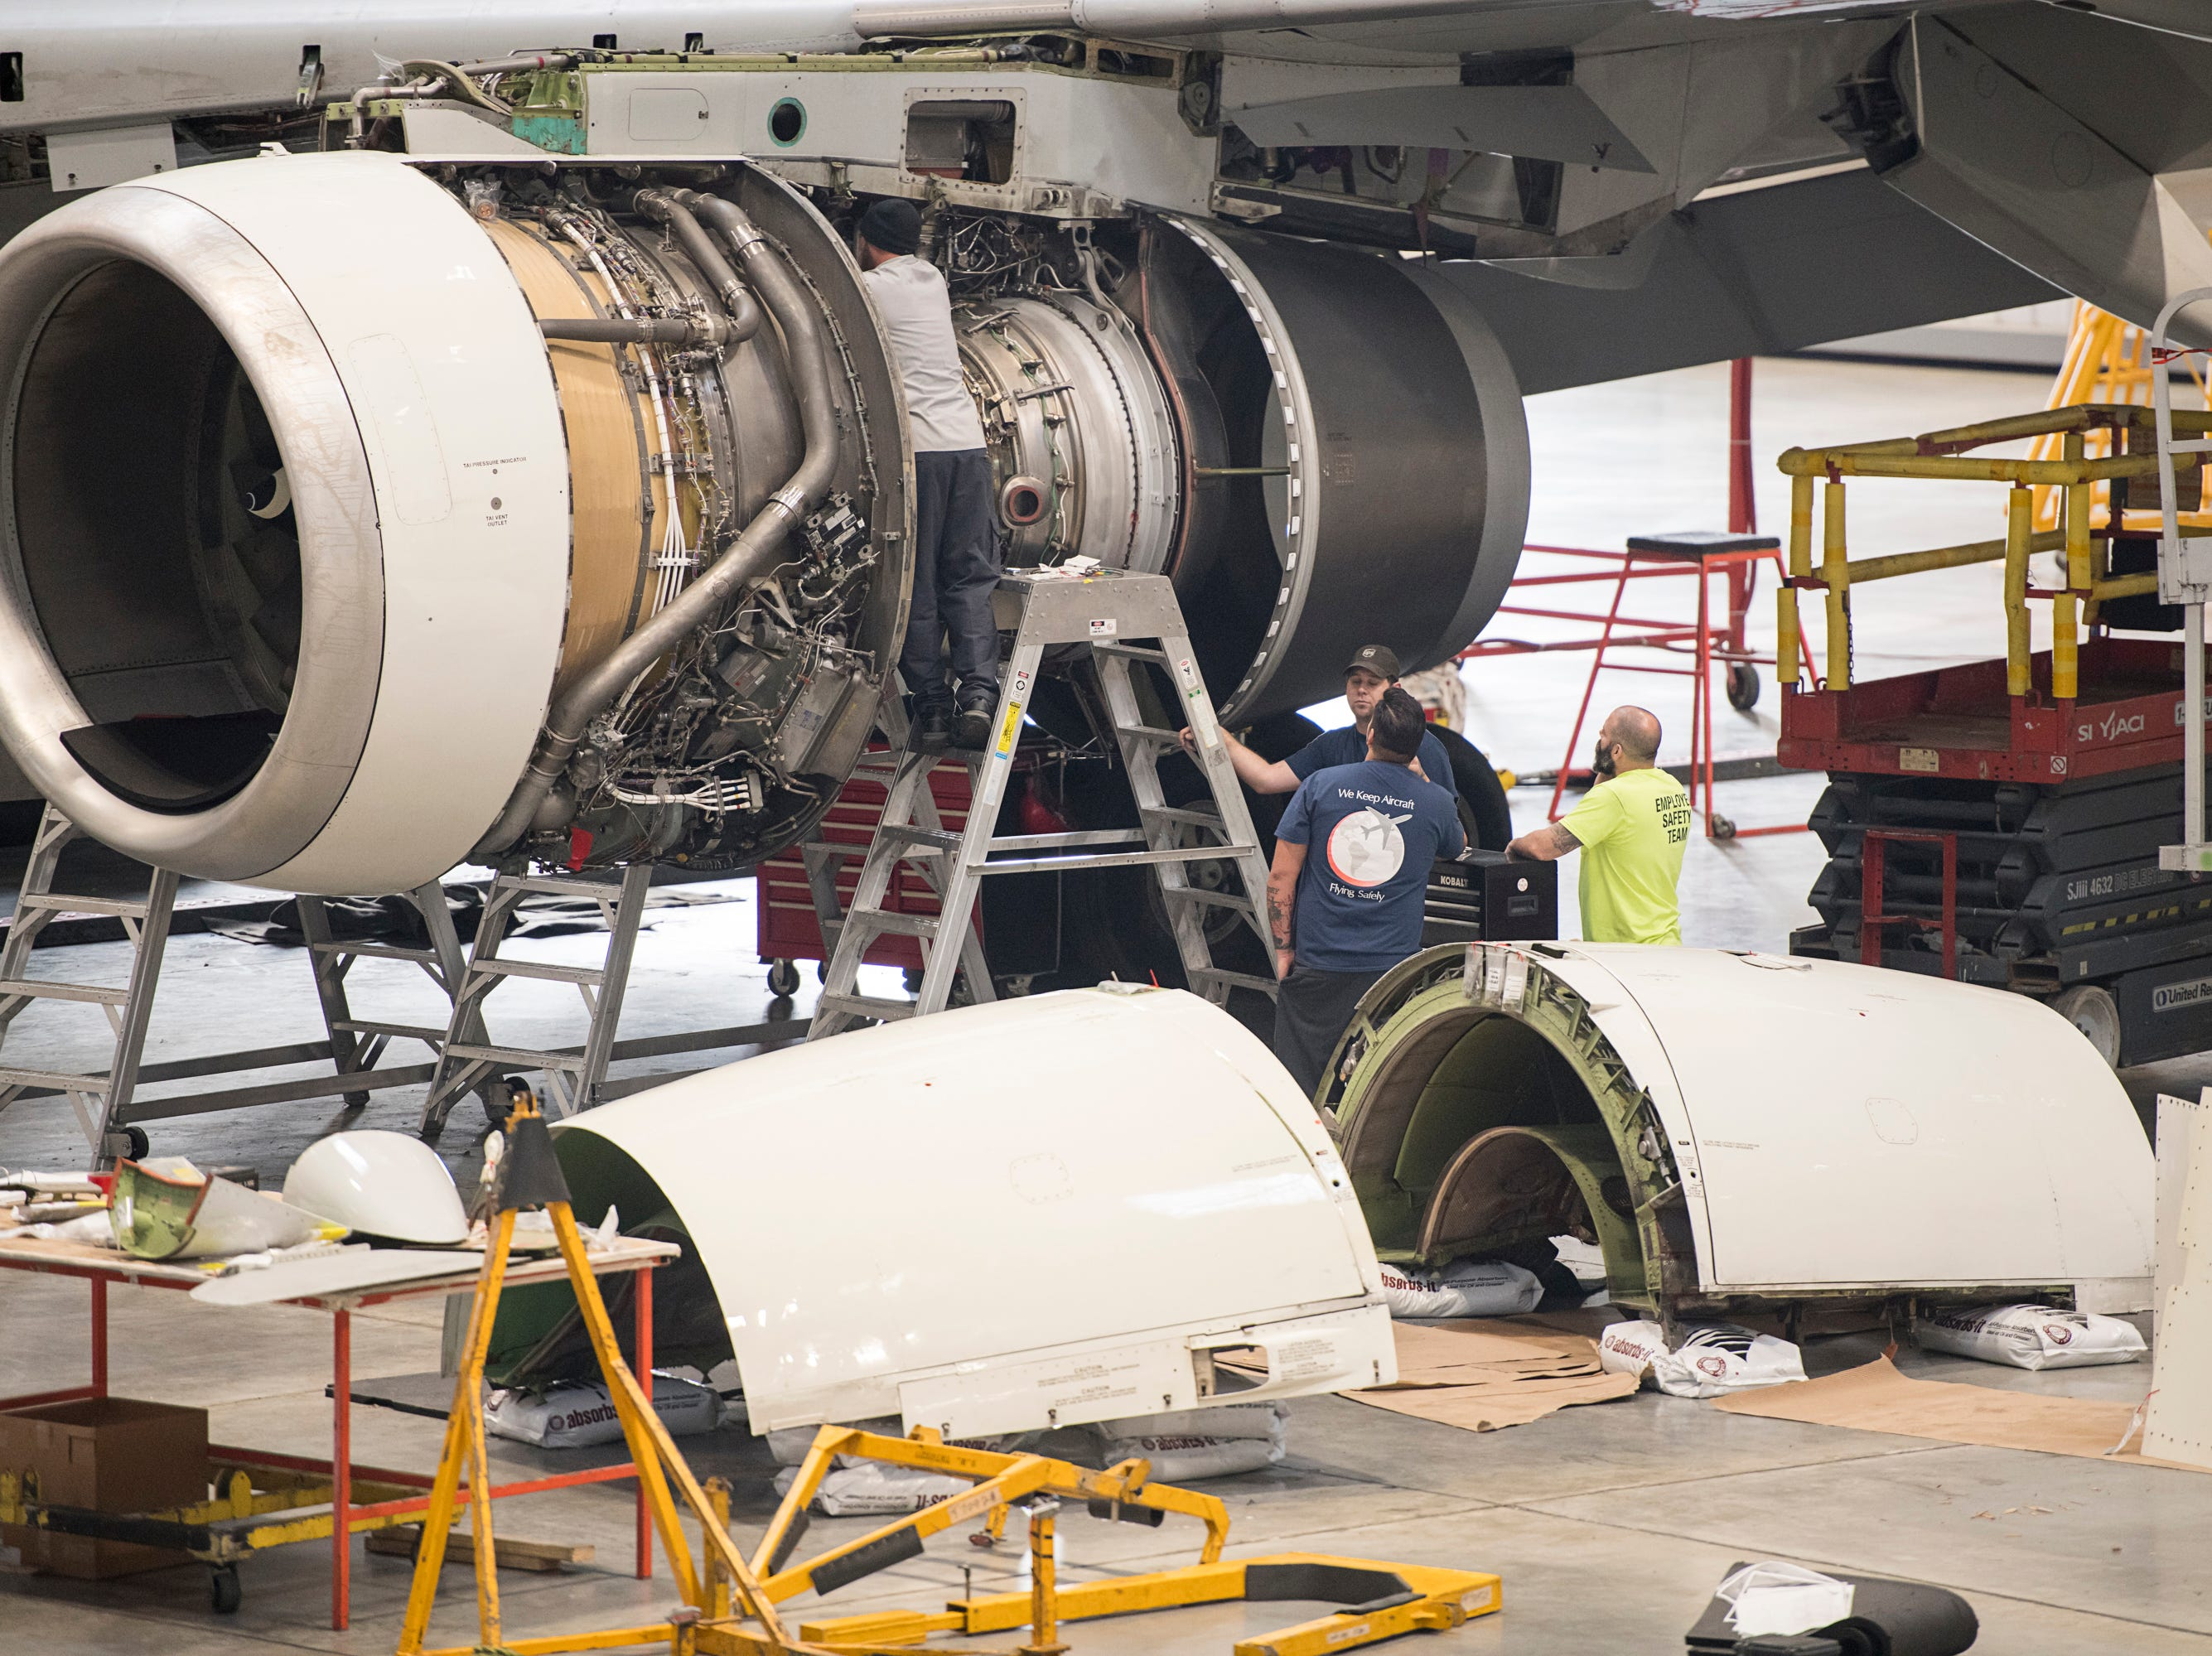 Mechanic Andy Bauer, top, works on a jet engine at ST Engineering at the Pensacola International Airport in Pensacola on Friday, February 8, 2019.